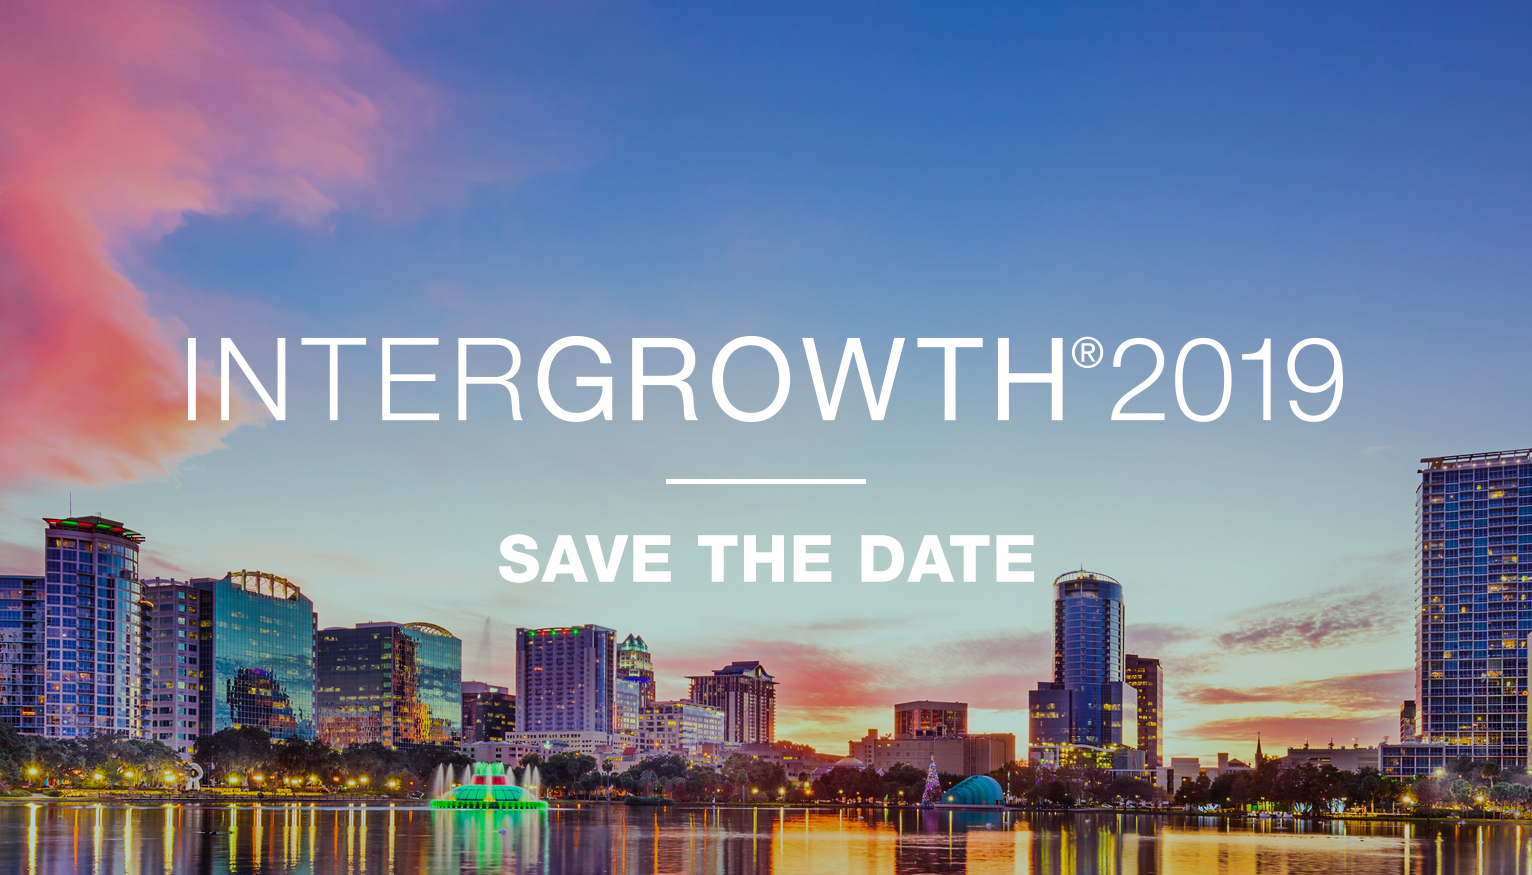 InterGrowth 2019 | Save the Date